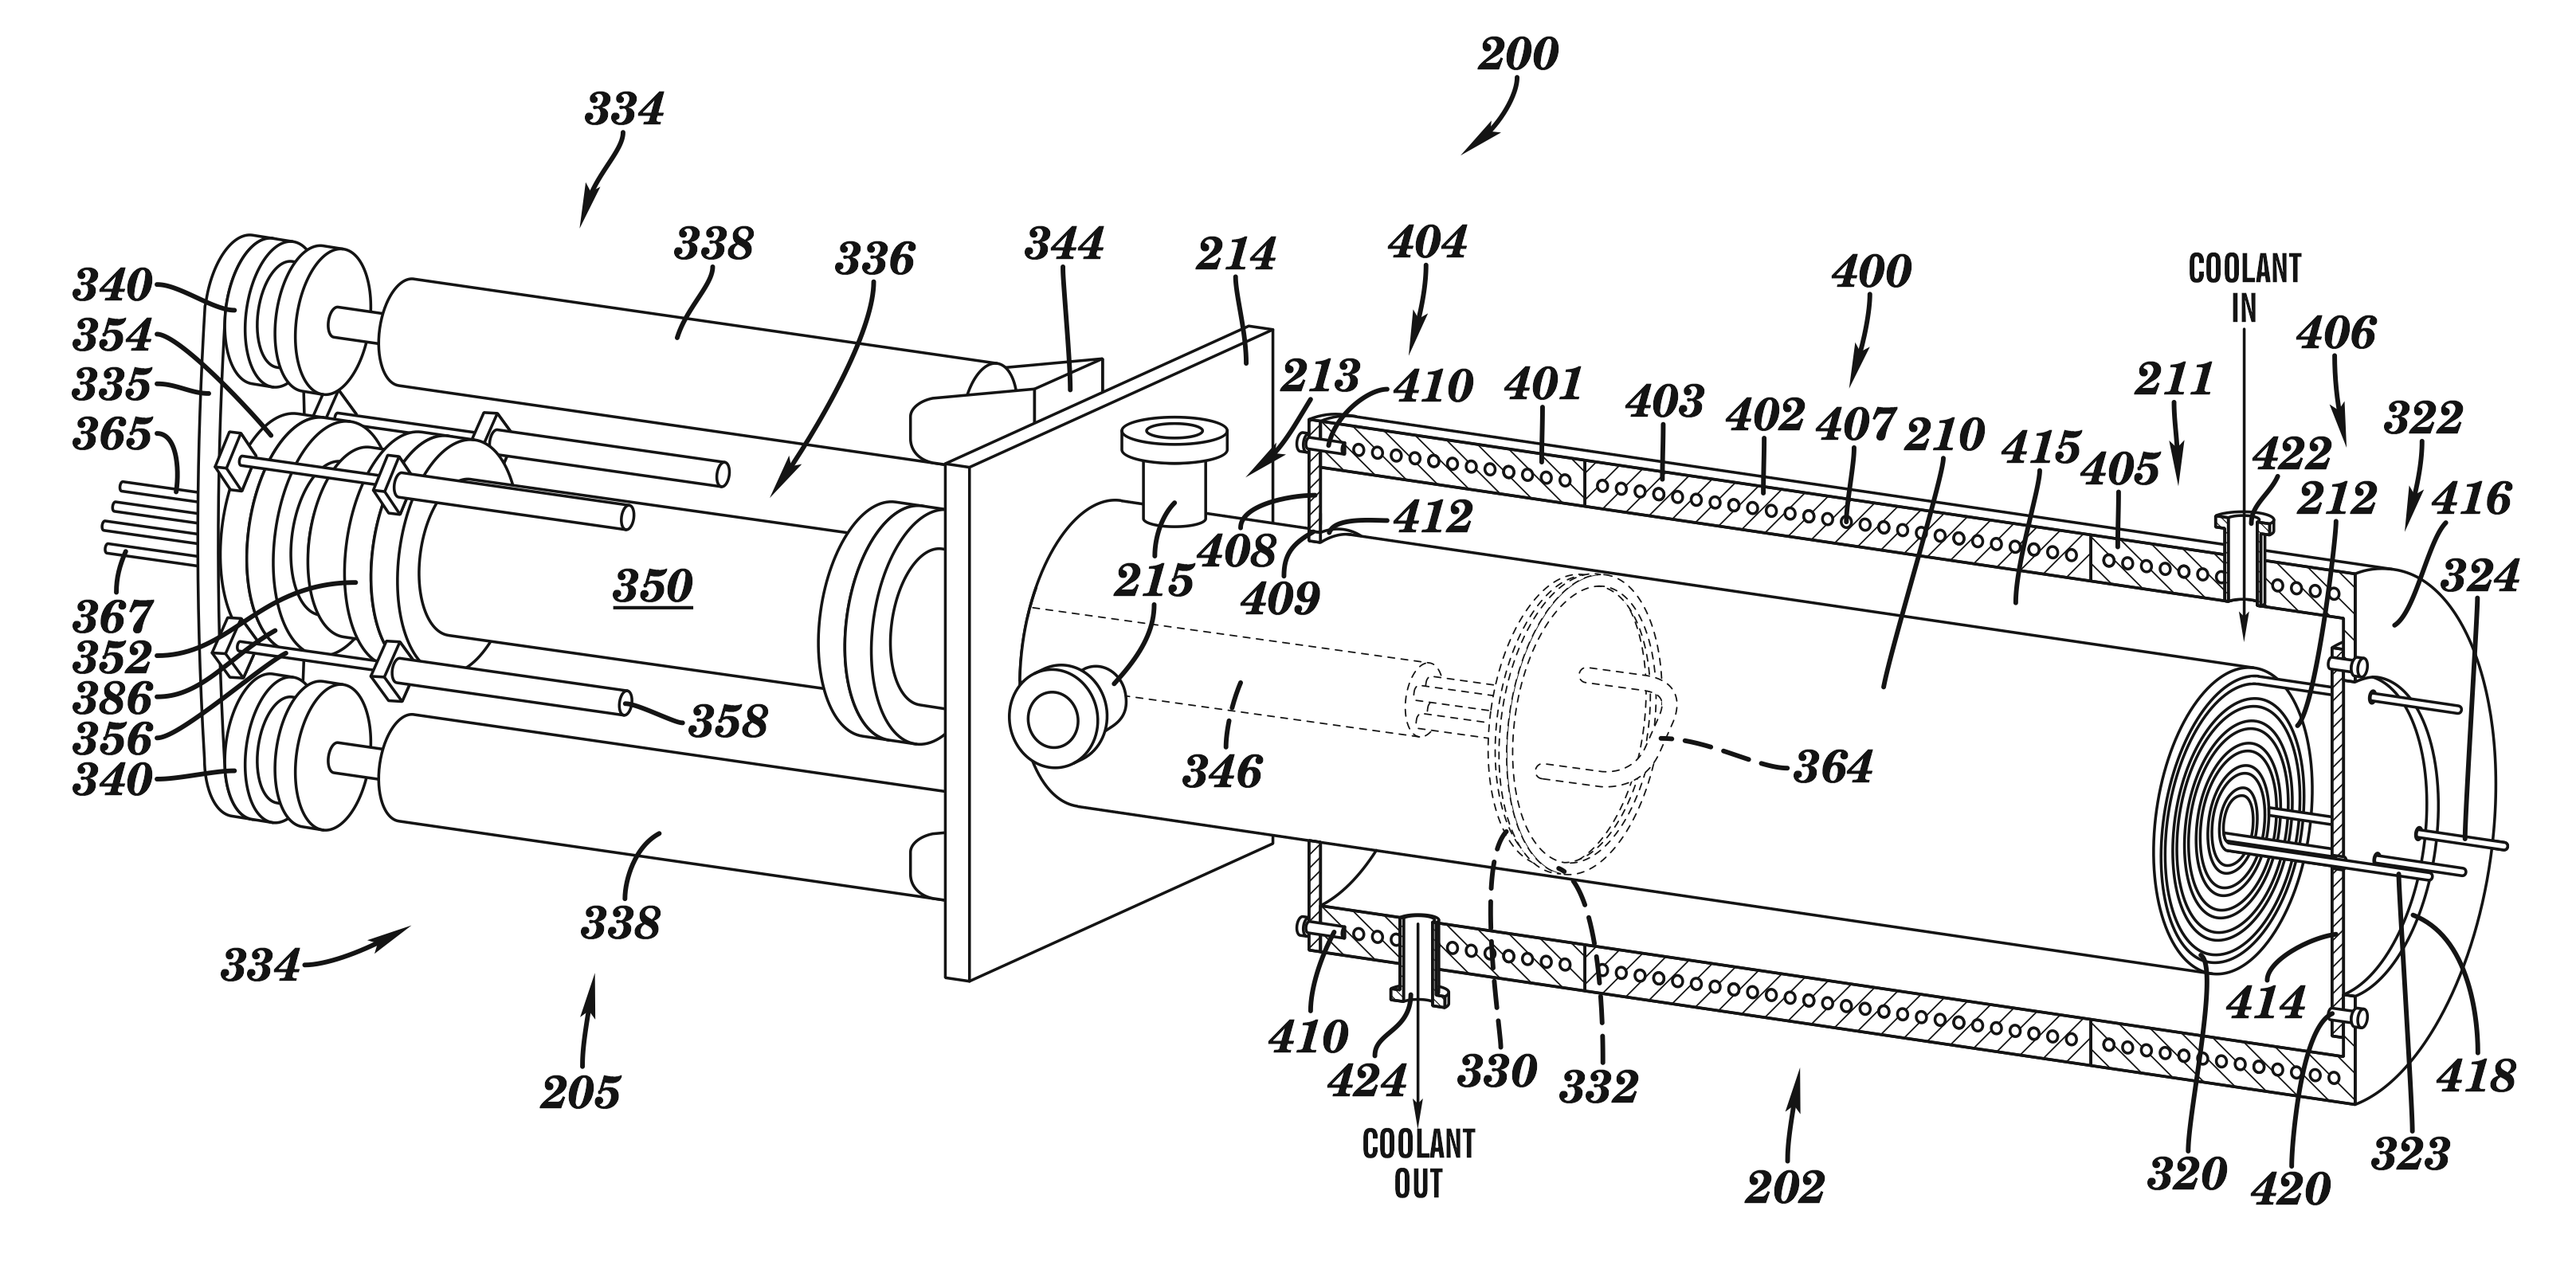 11_ptiserviceco_patent_drawing_mechanical.png